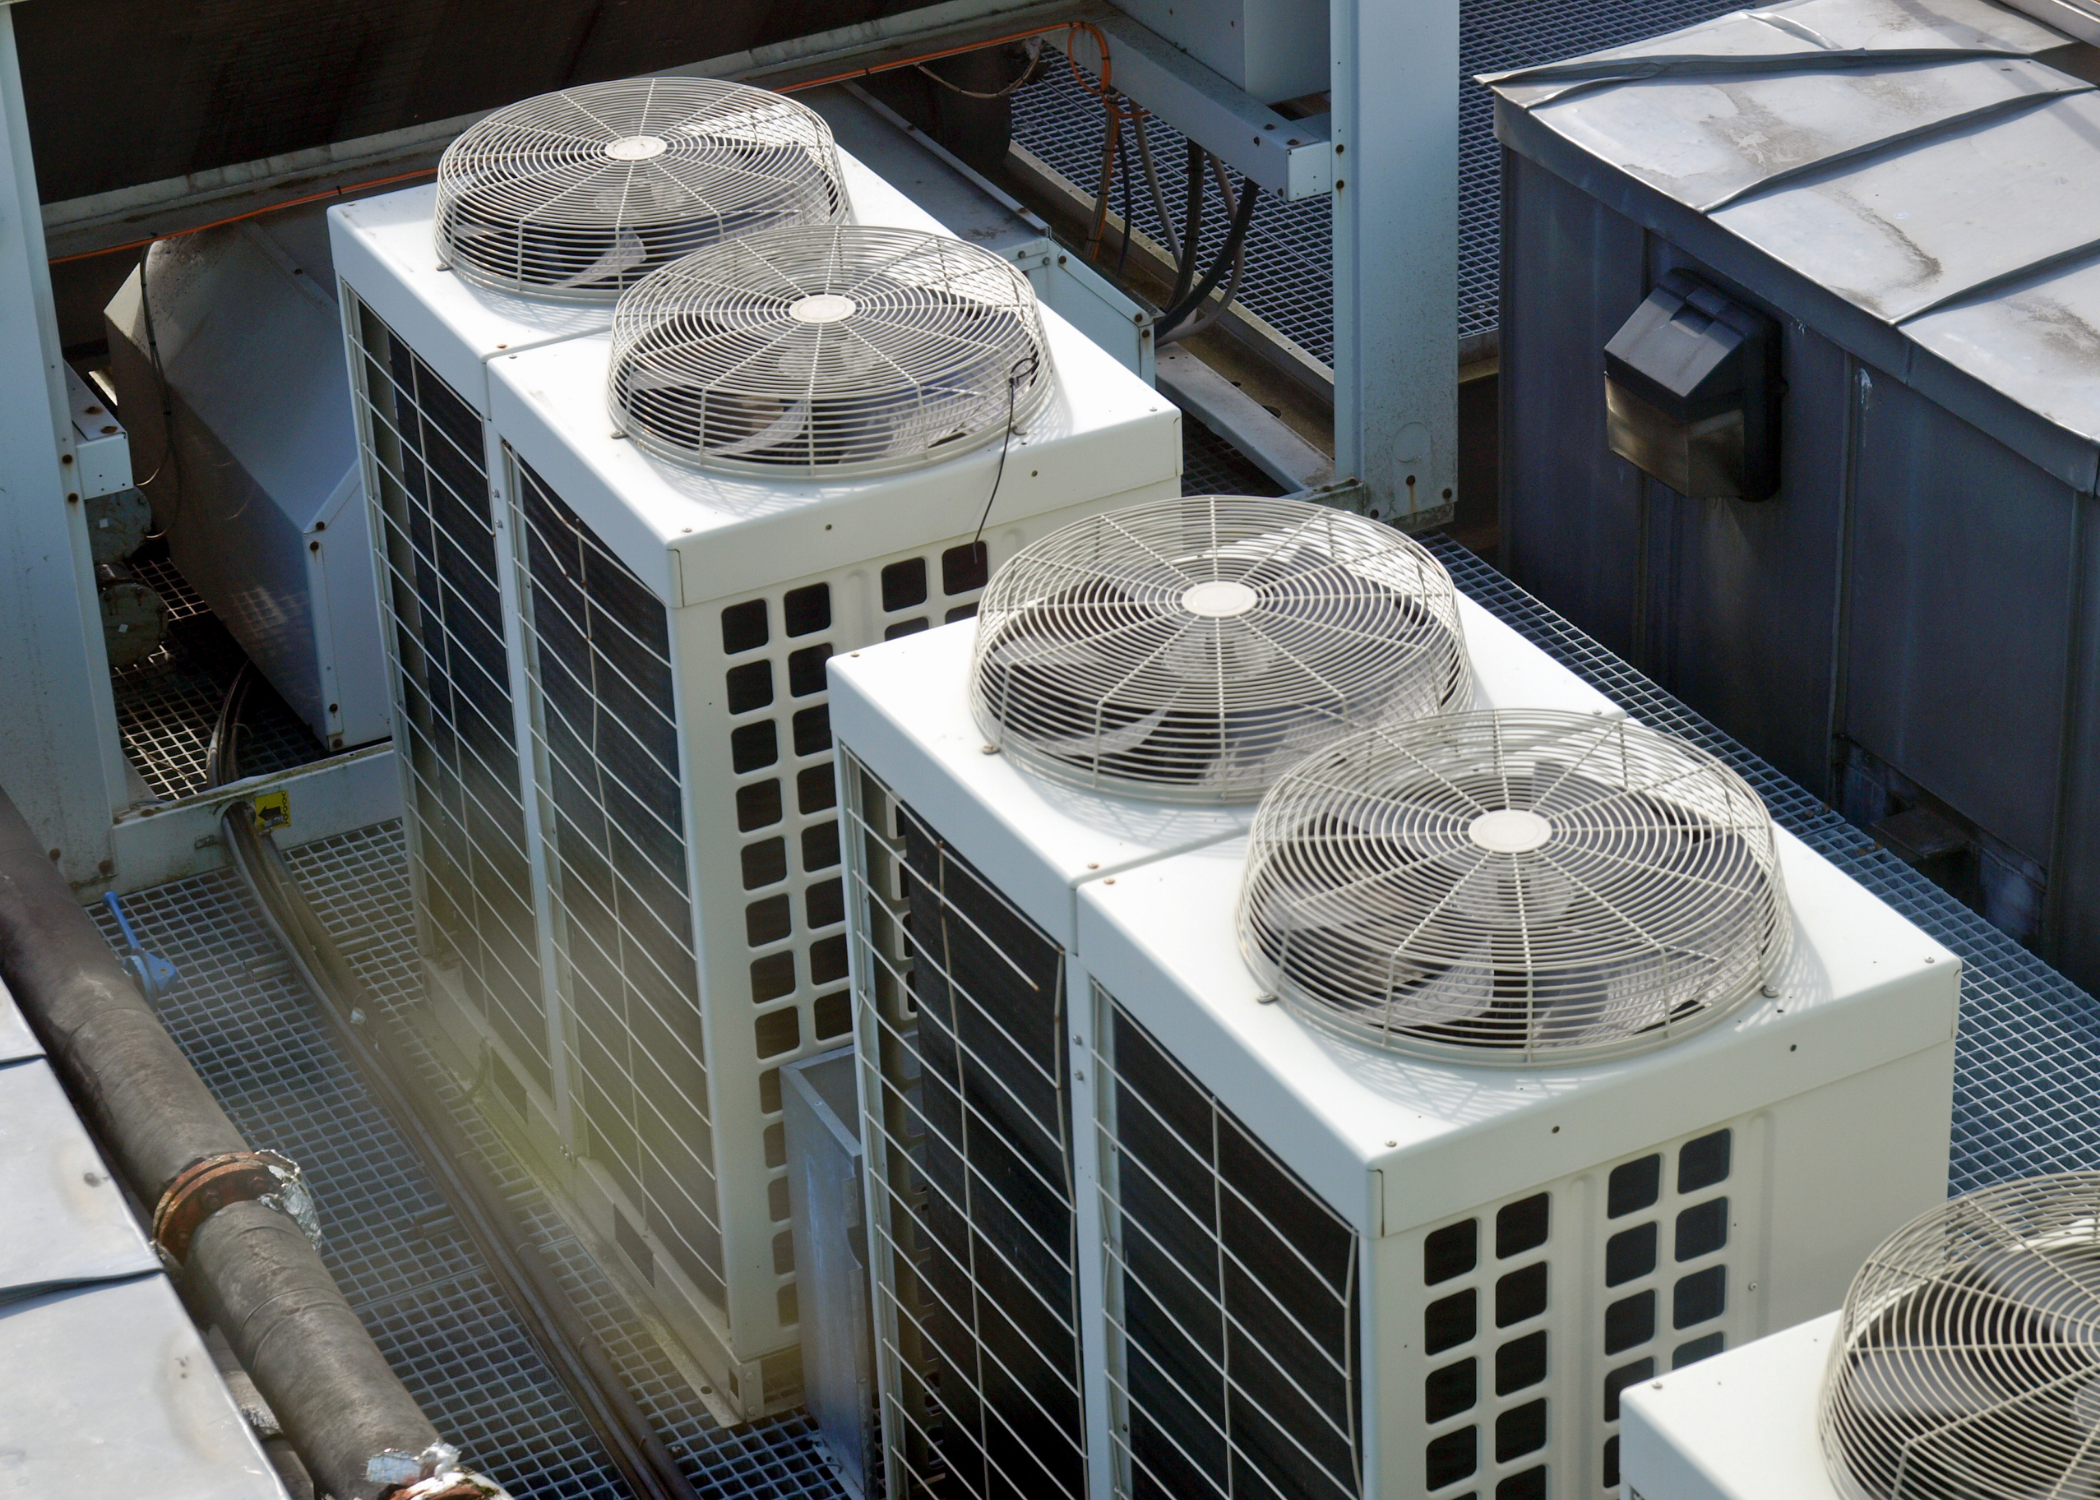 HVAC is not Blowing Hot Air